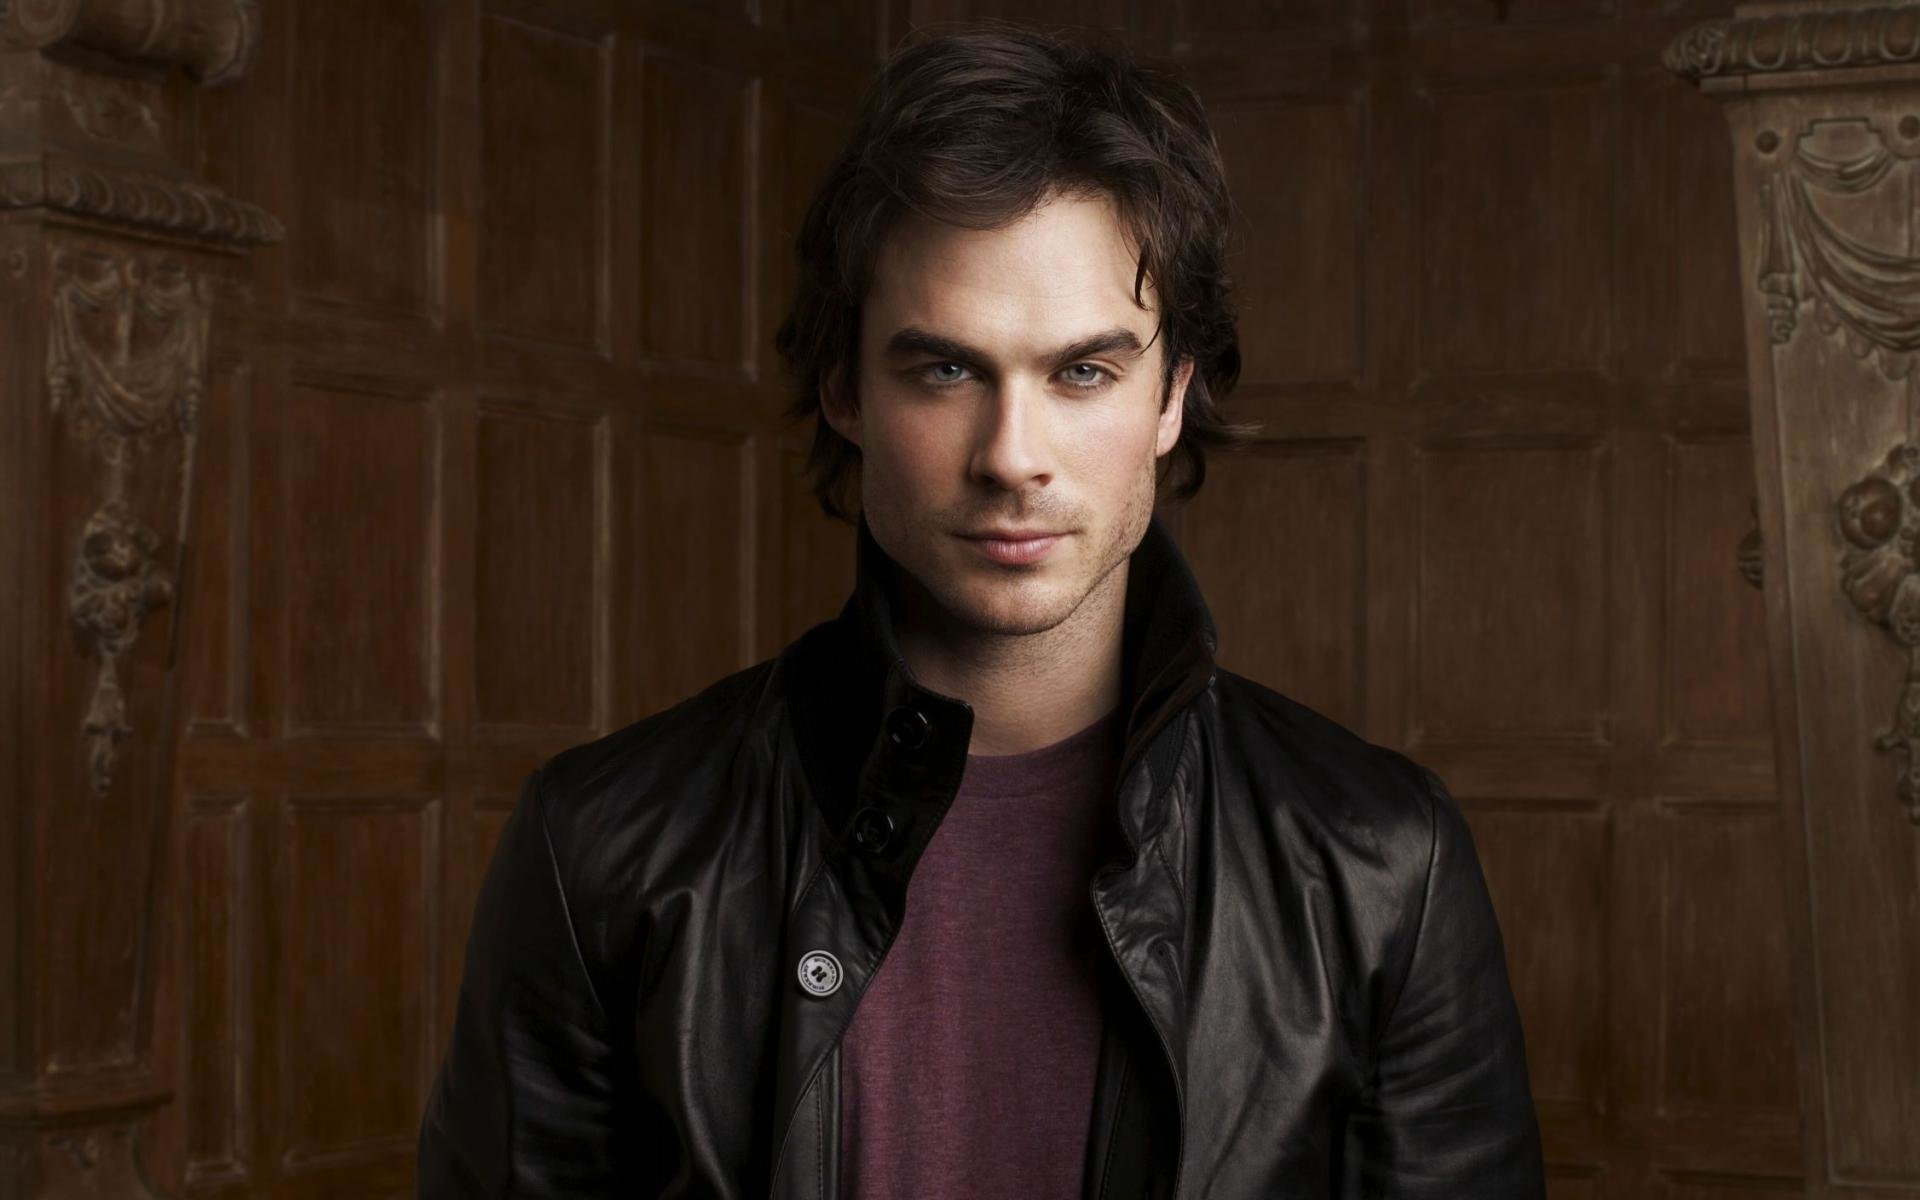 High resolution Ian Somerhalder hd 1920x1200 background ID:180270 for computer